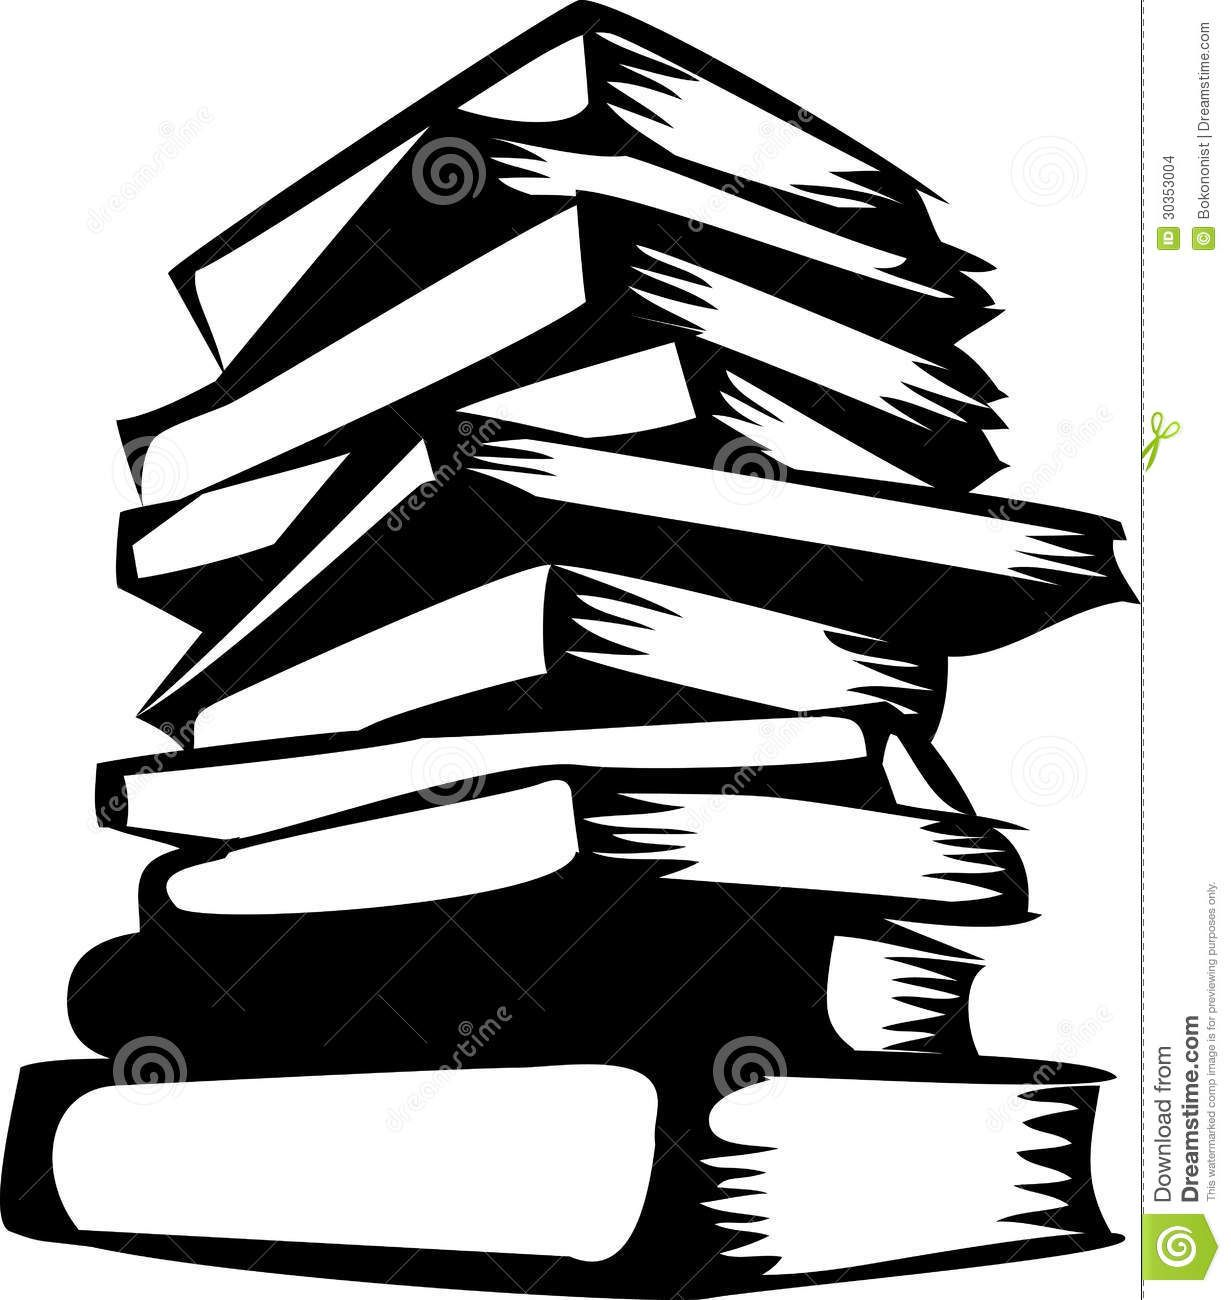 Books silhouette. Stacked use these free